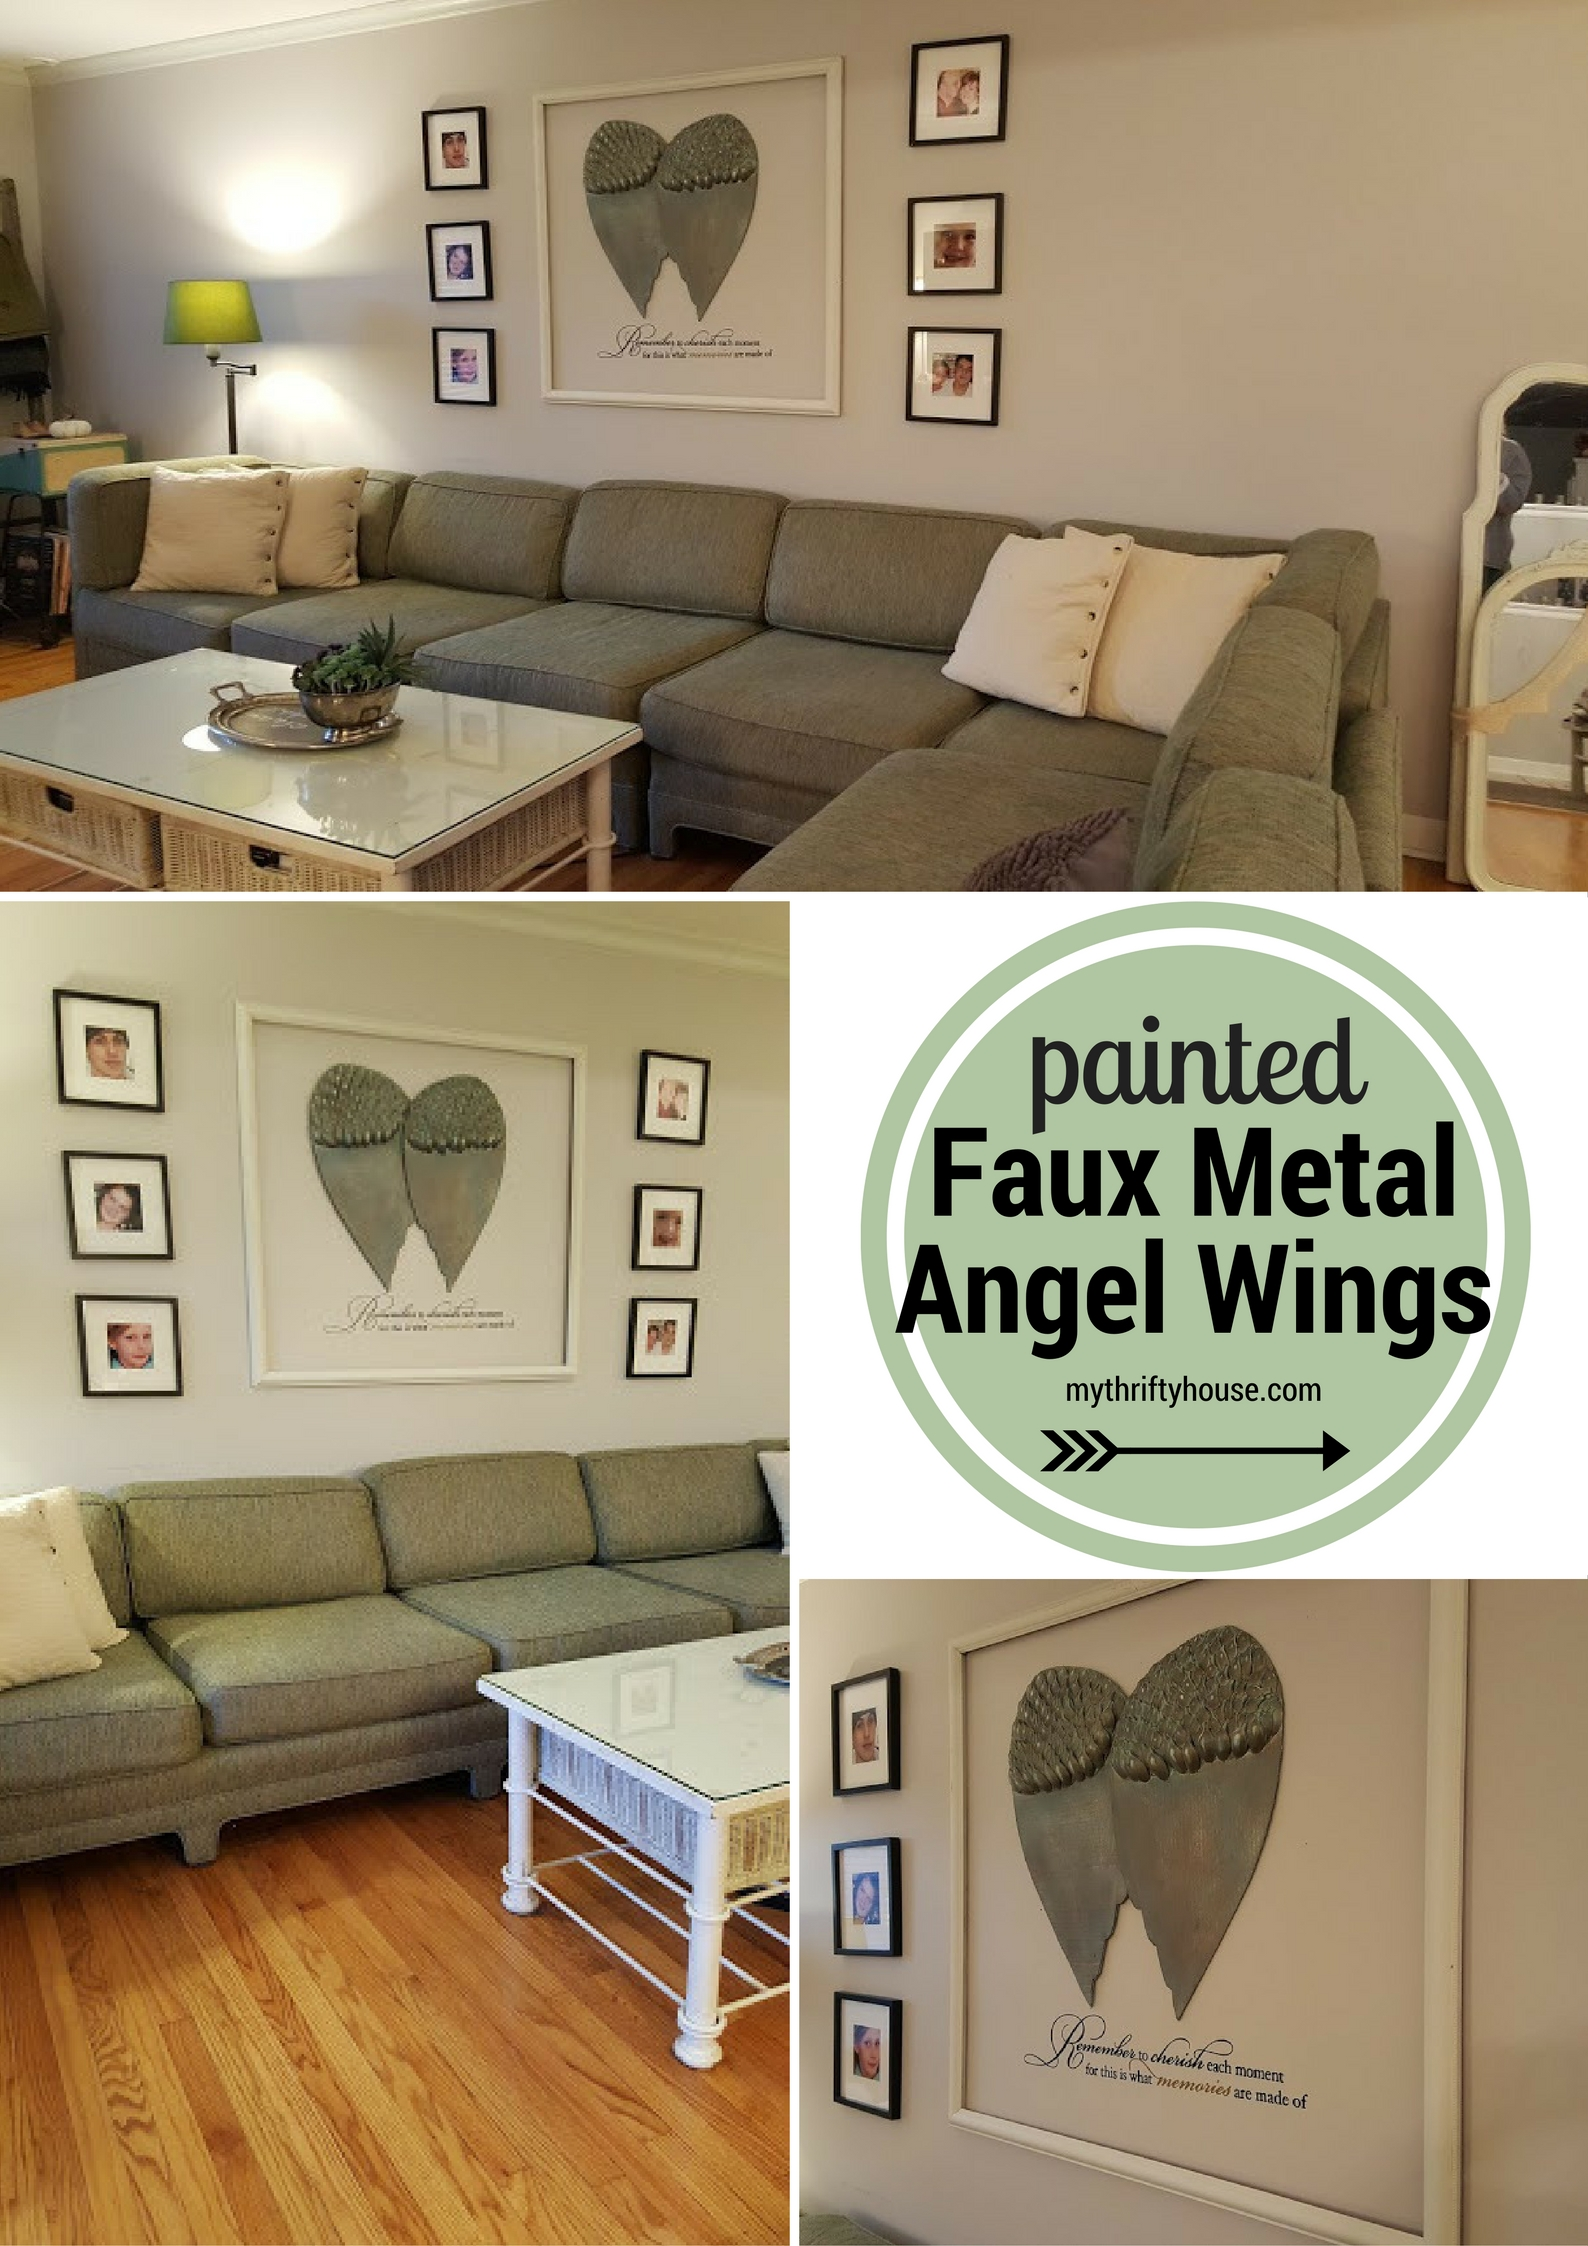 cardboard-painted-faux-metal-angel-wings